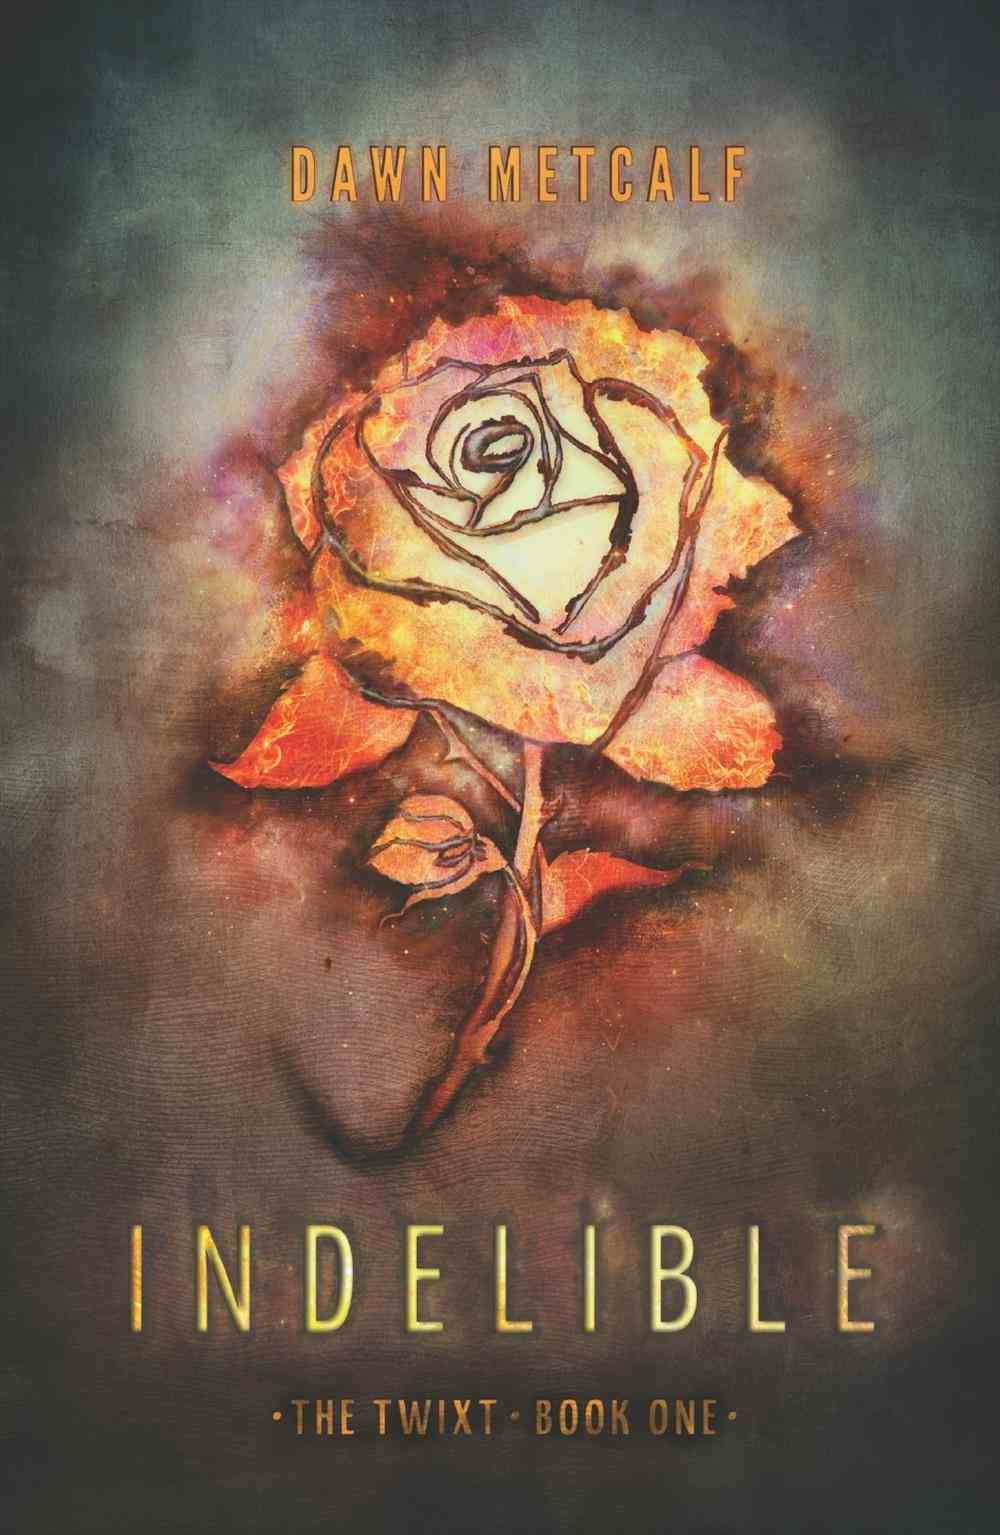 Indelible: the Twixt #1 by Dawn Metcalf